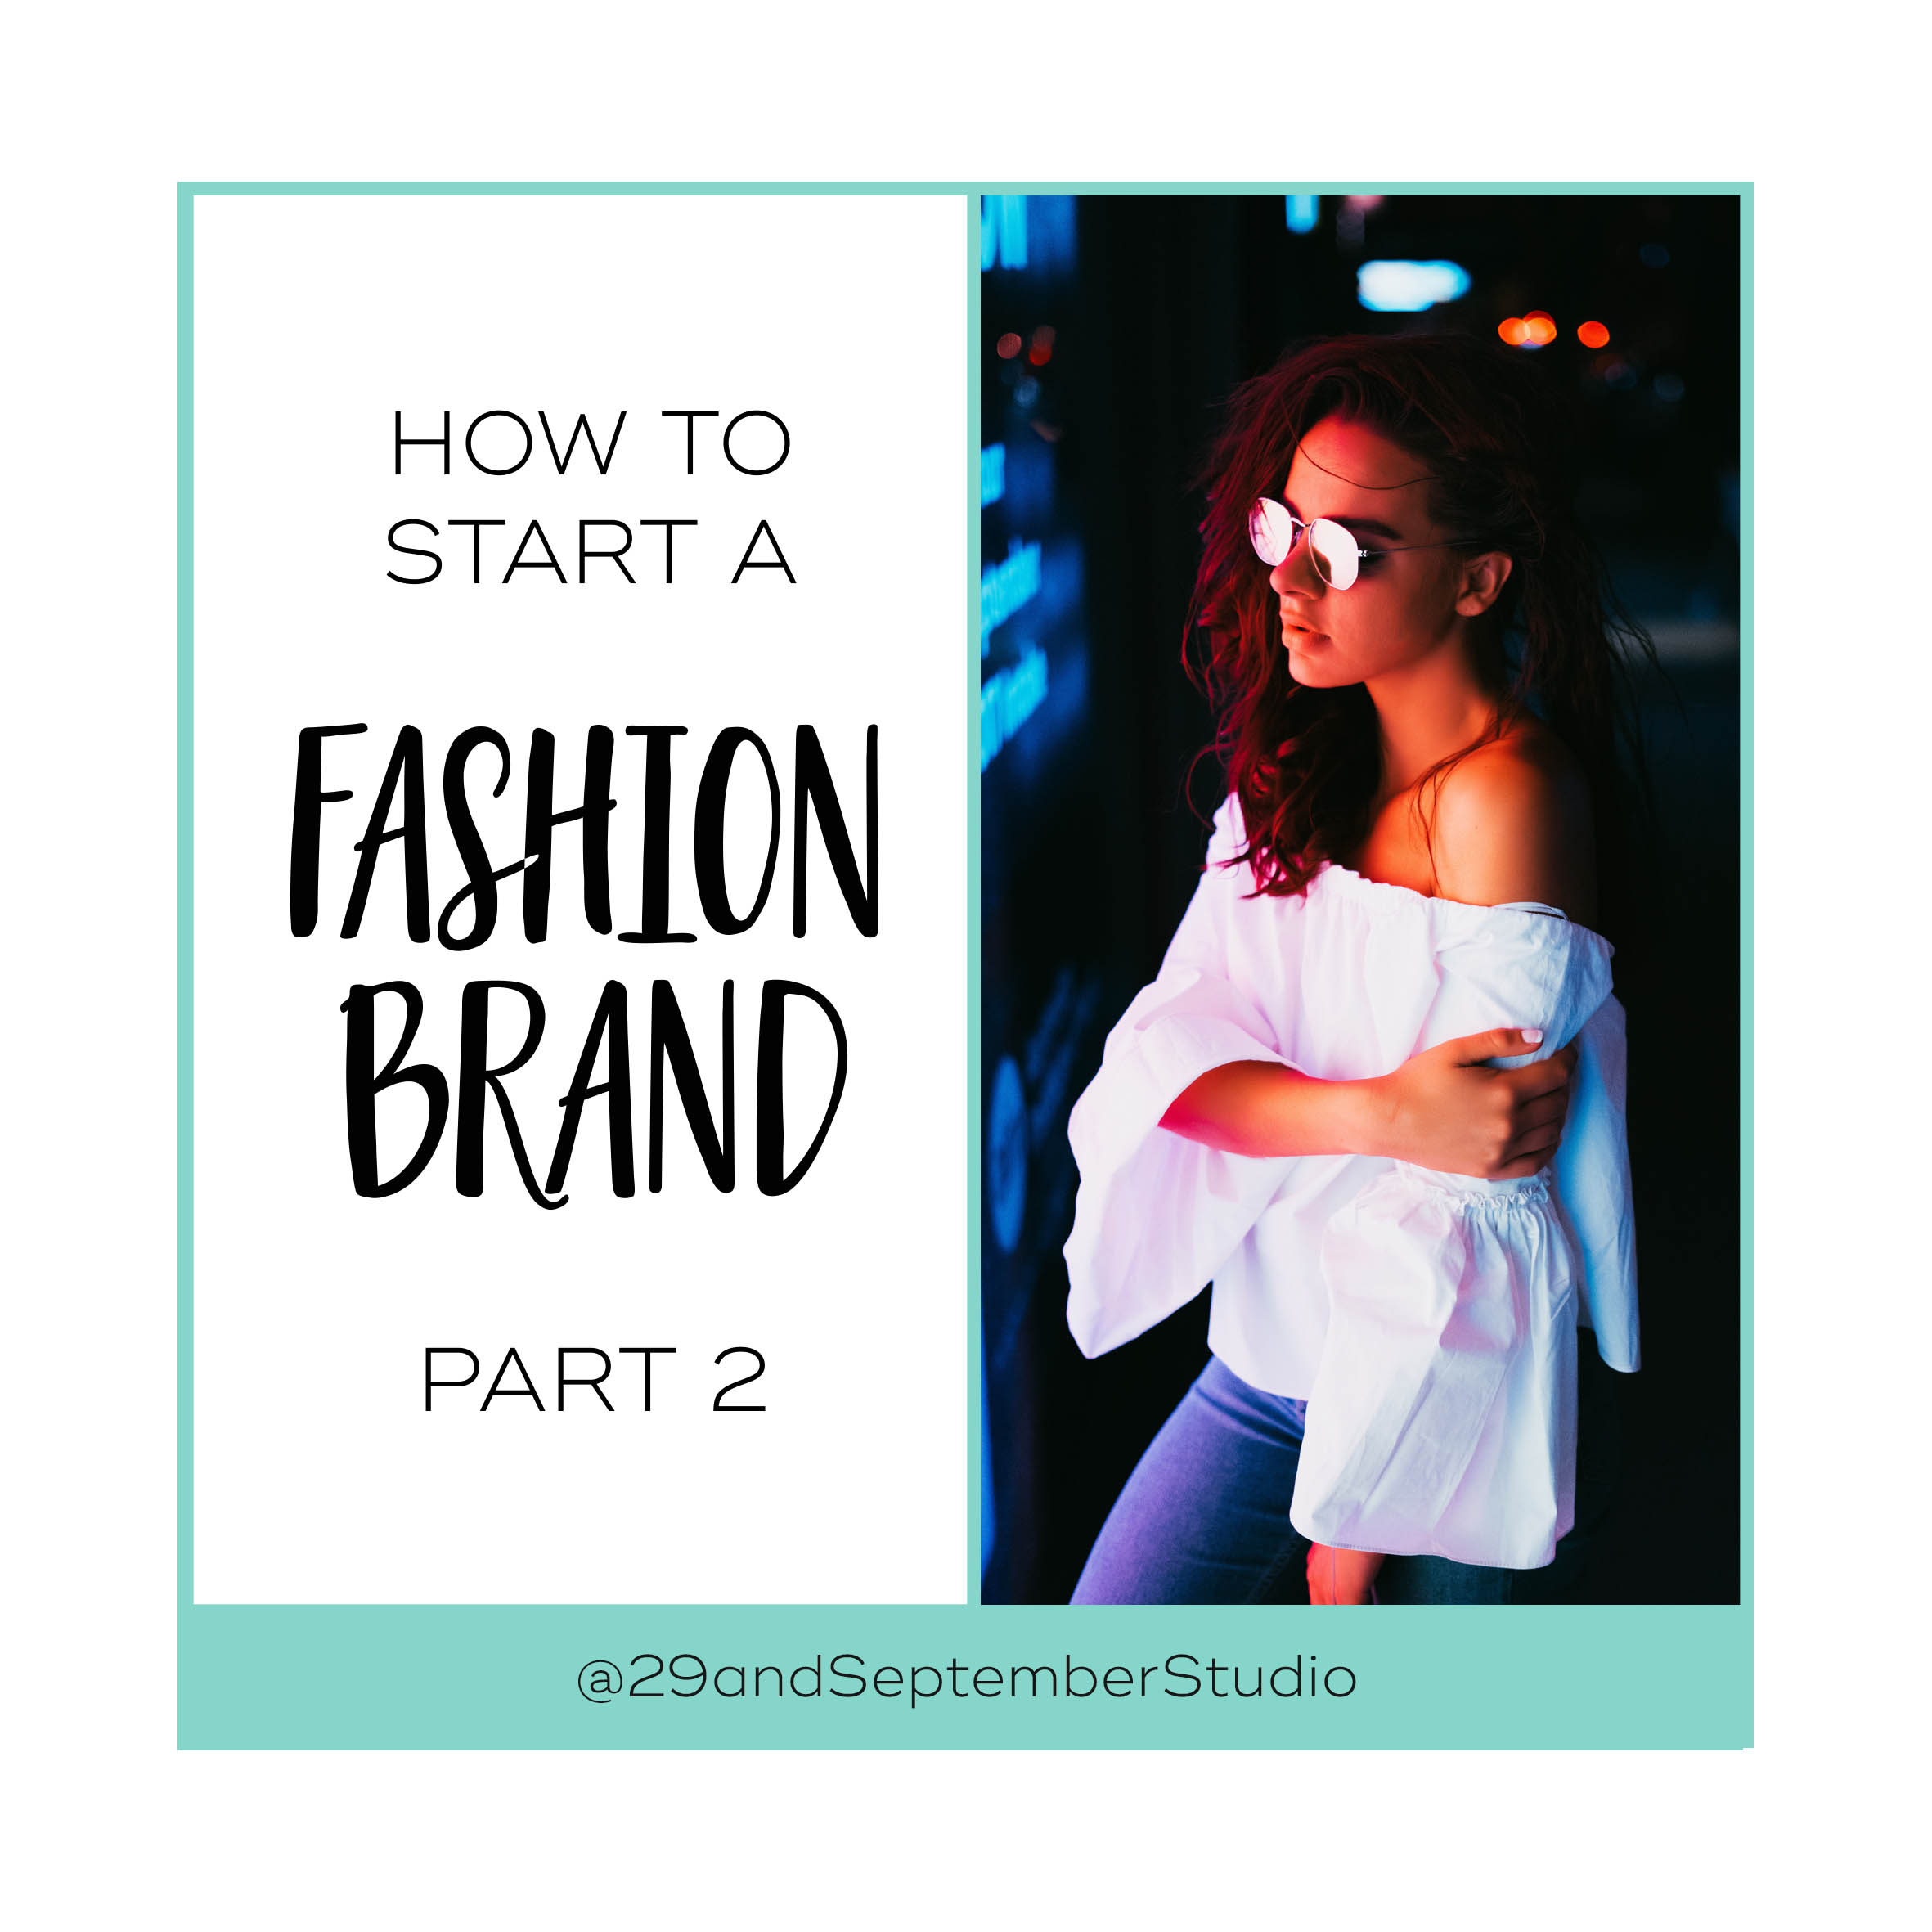 How to start a fashion brand